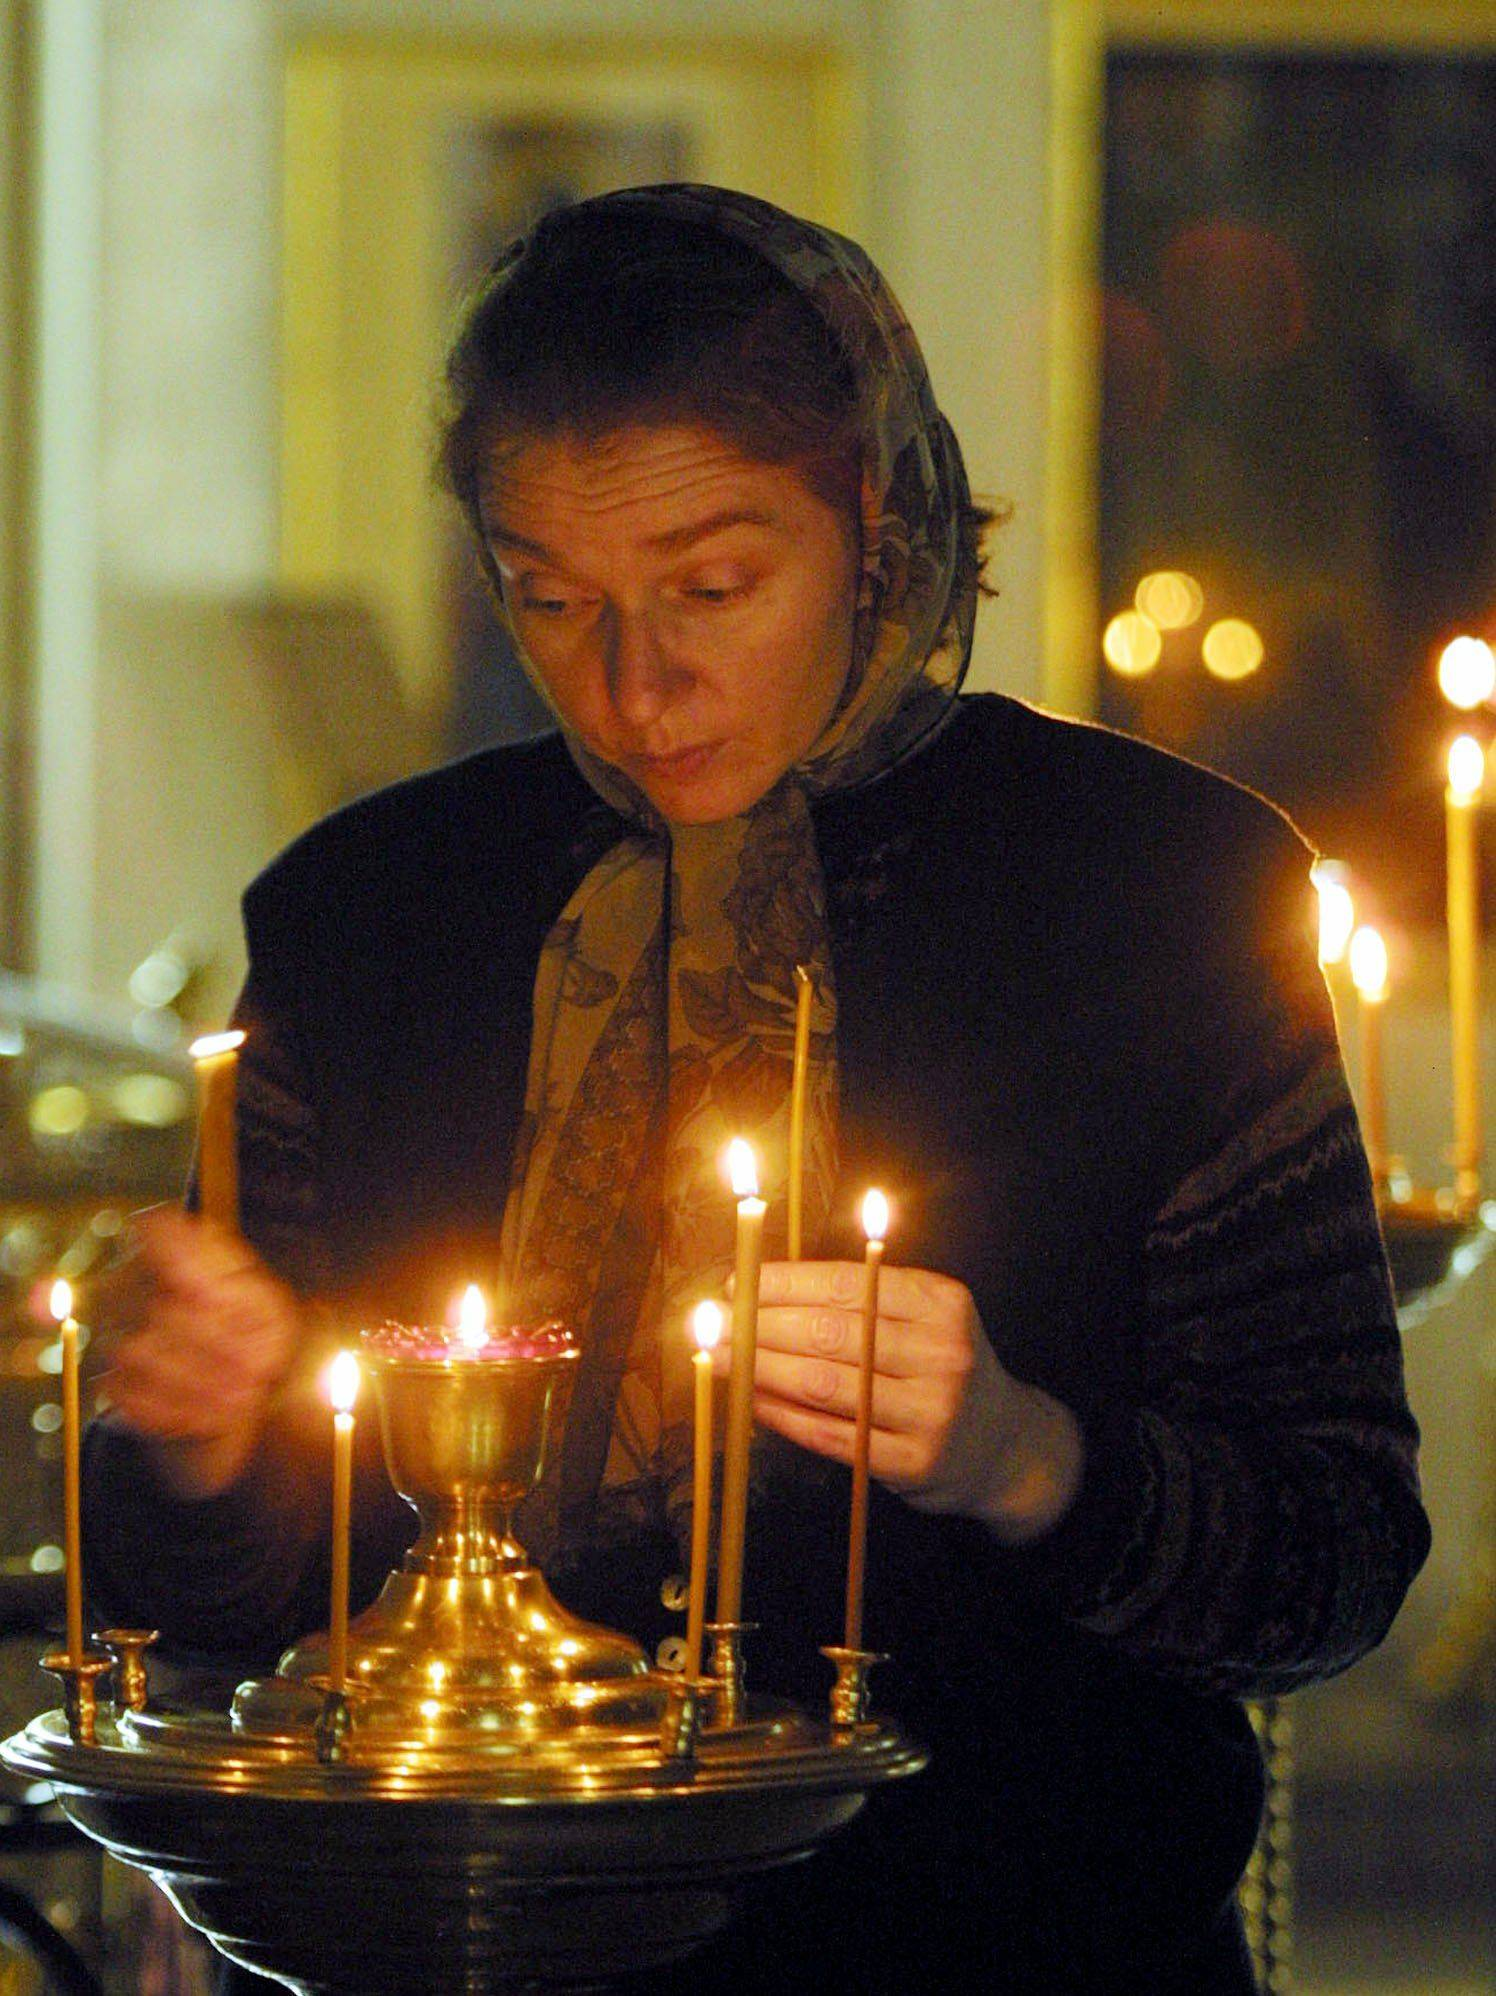 A Russian woman lights candles mourning the victims of the terrorist attacks in the United States during a special service at St. Nicholas Cathedral in Moscow on Sept. 14, 2001.